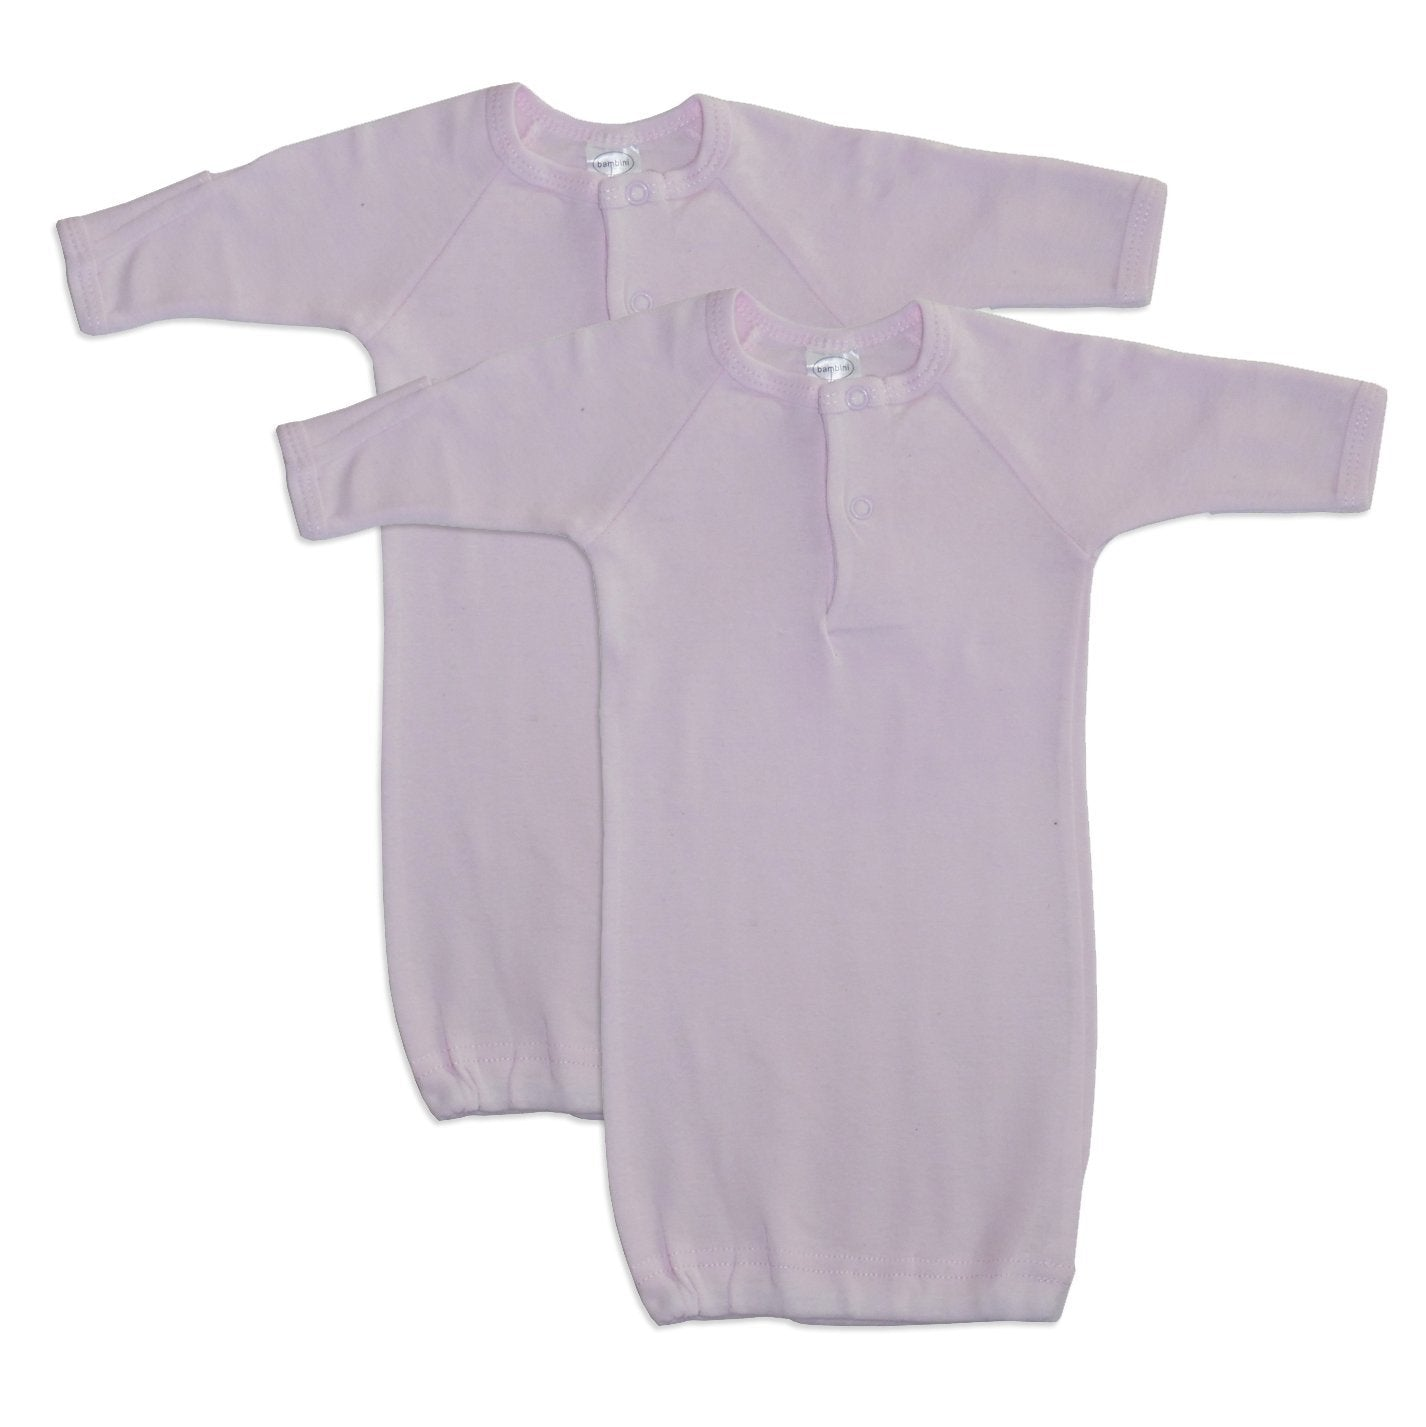 Newborn Baby Infant Pink Gown - Made in USA - swakidsstore